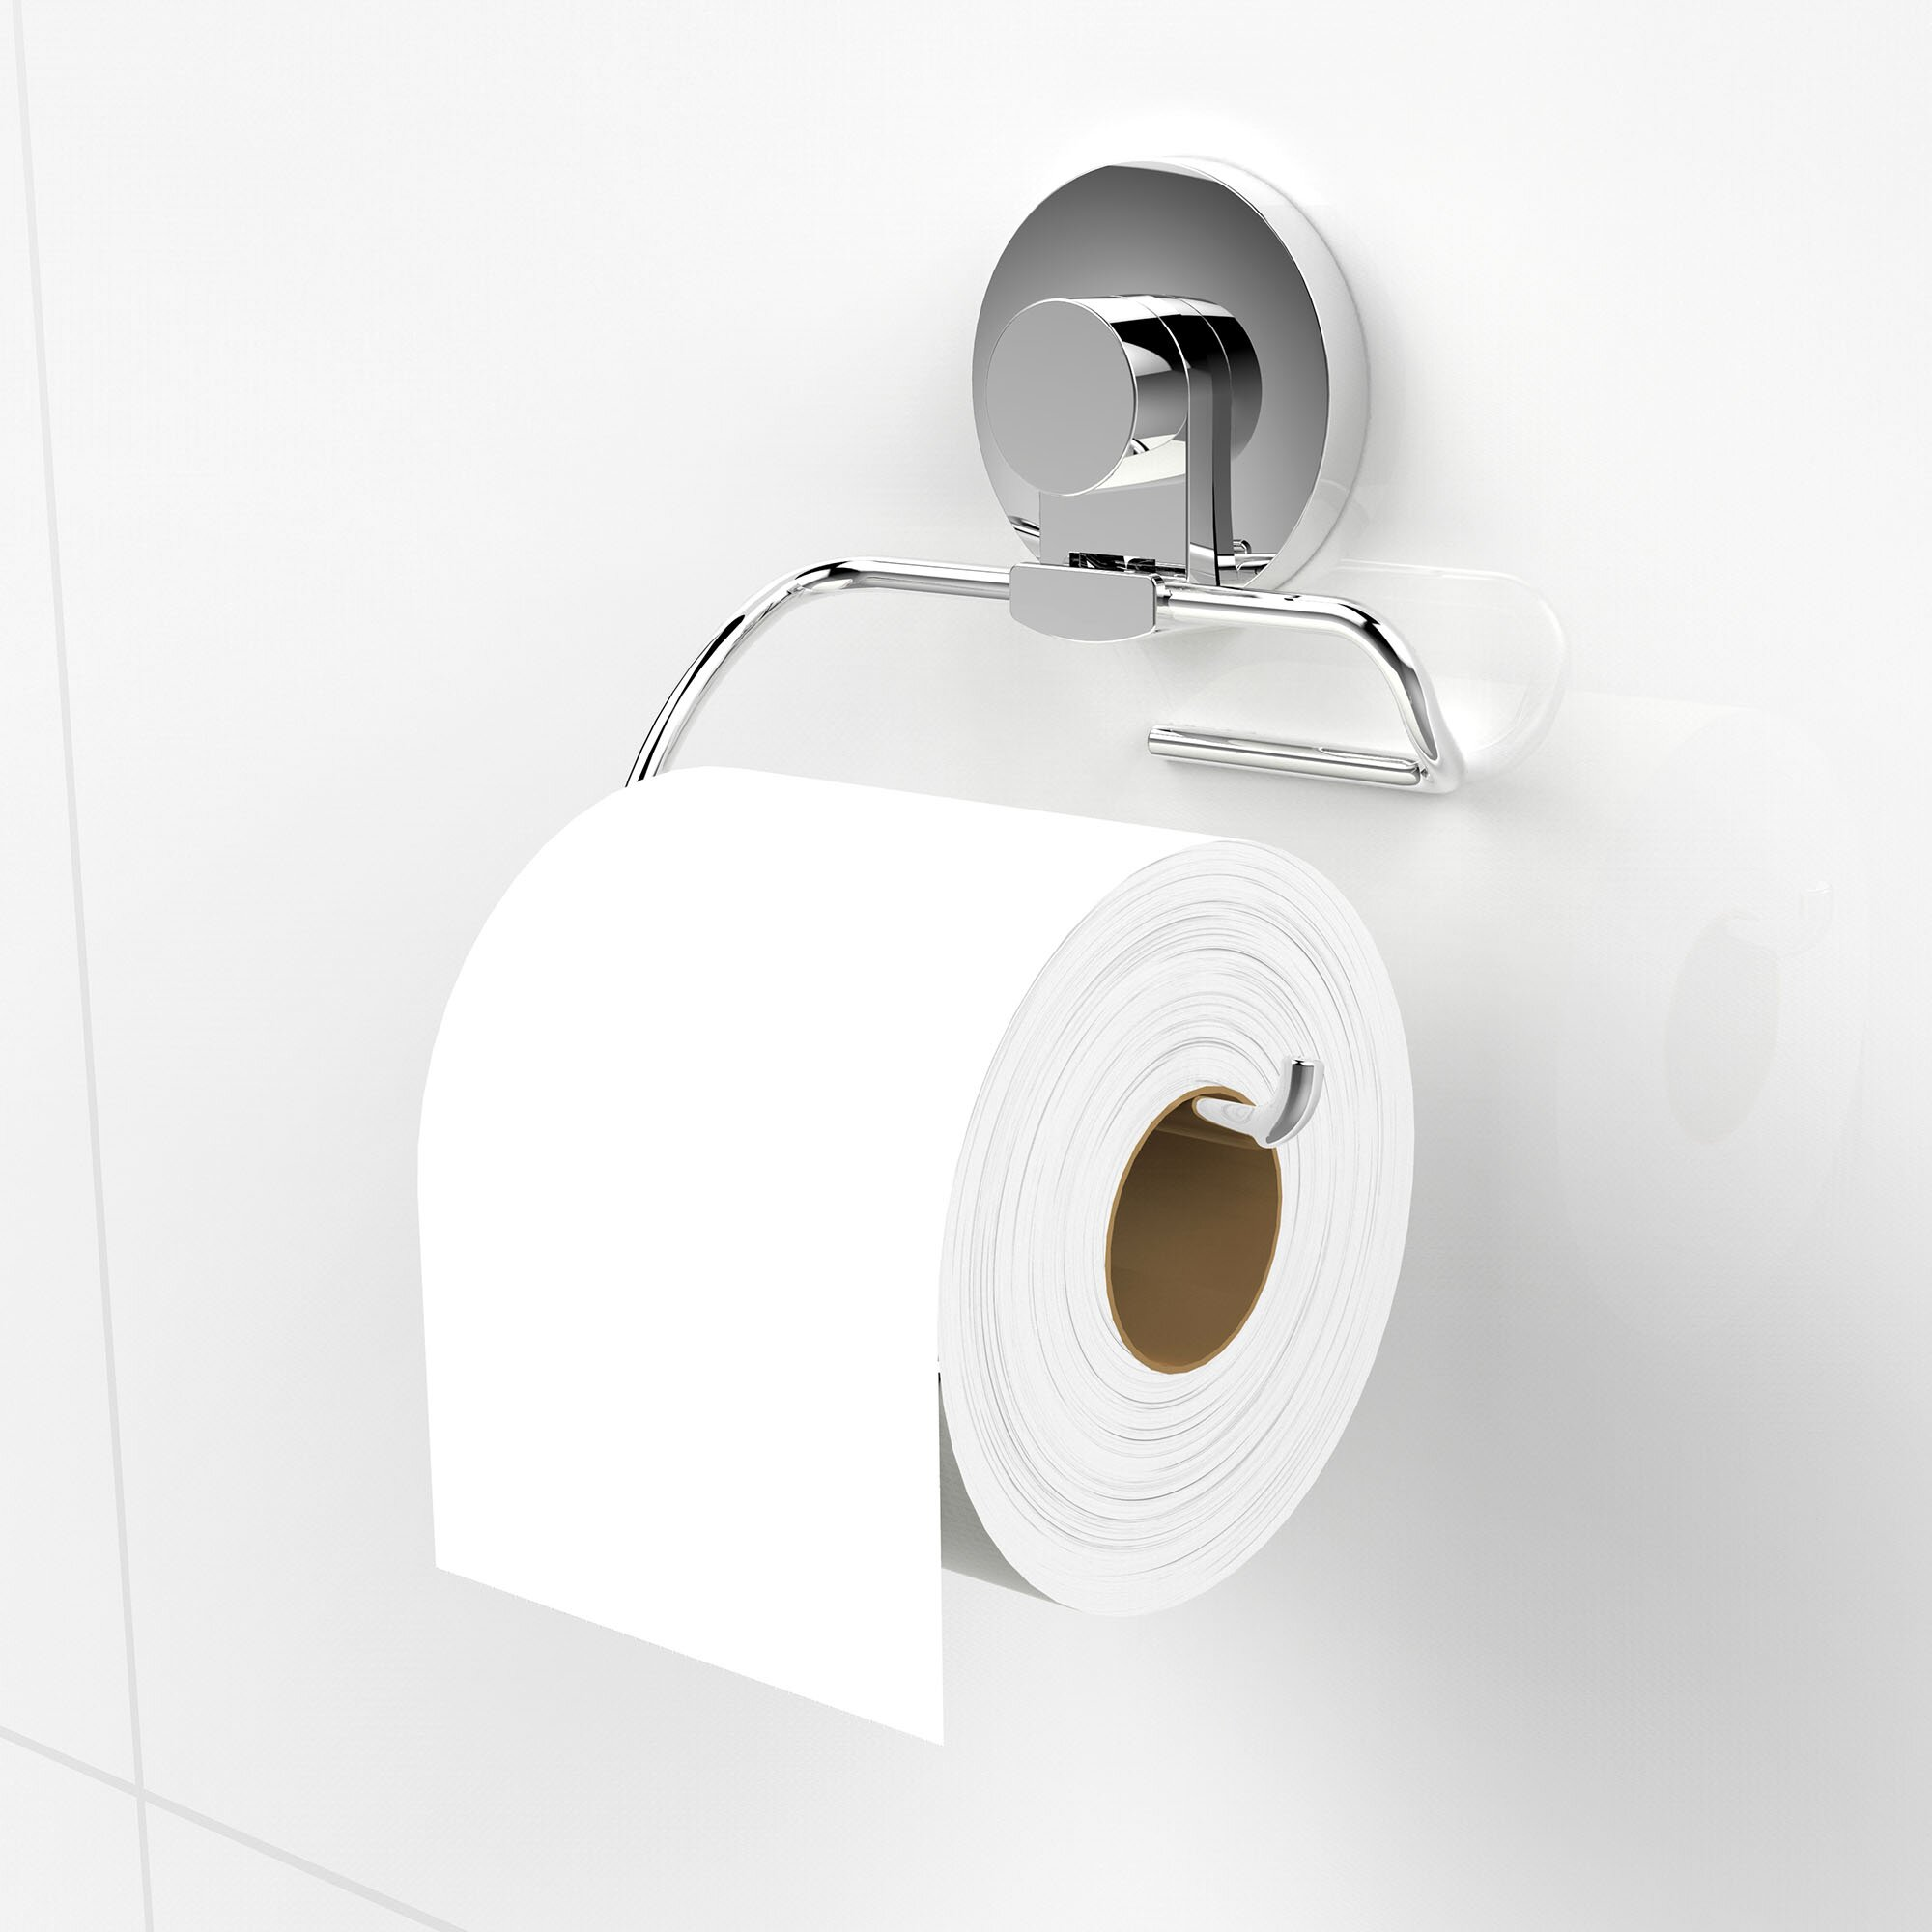 Everloc xpressions wall mount toilet paper holder Kids toilet paper holder